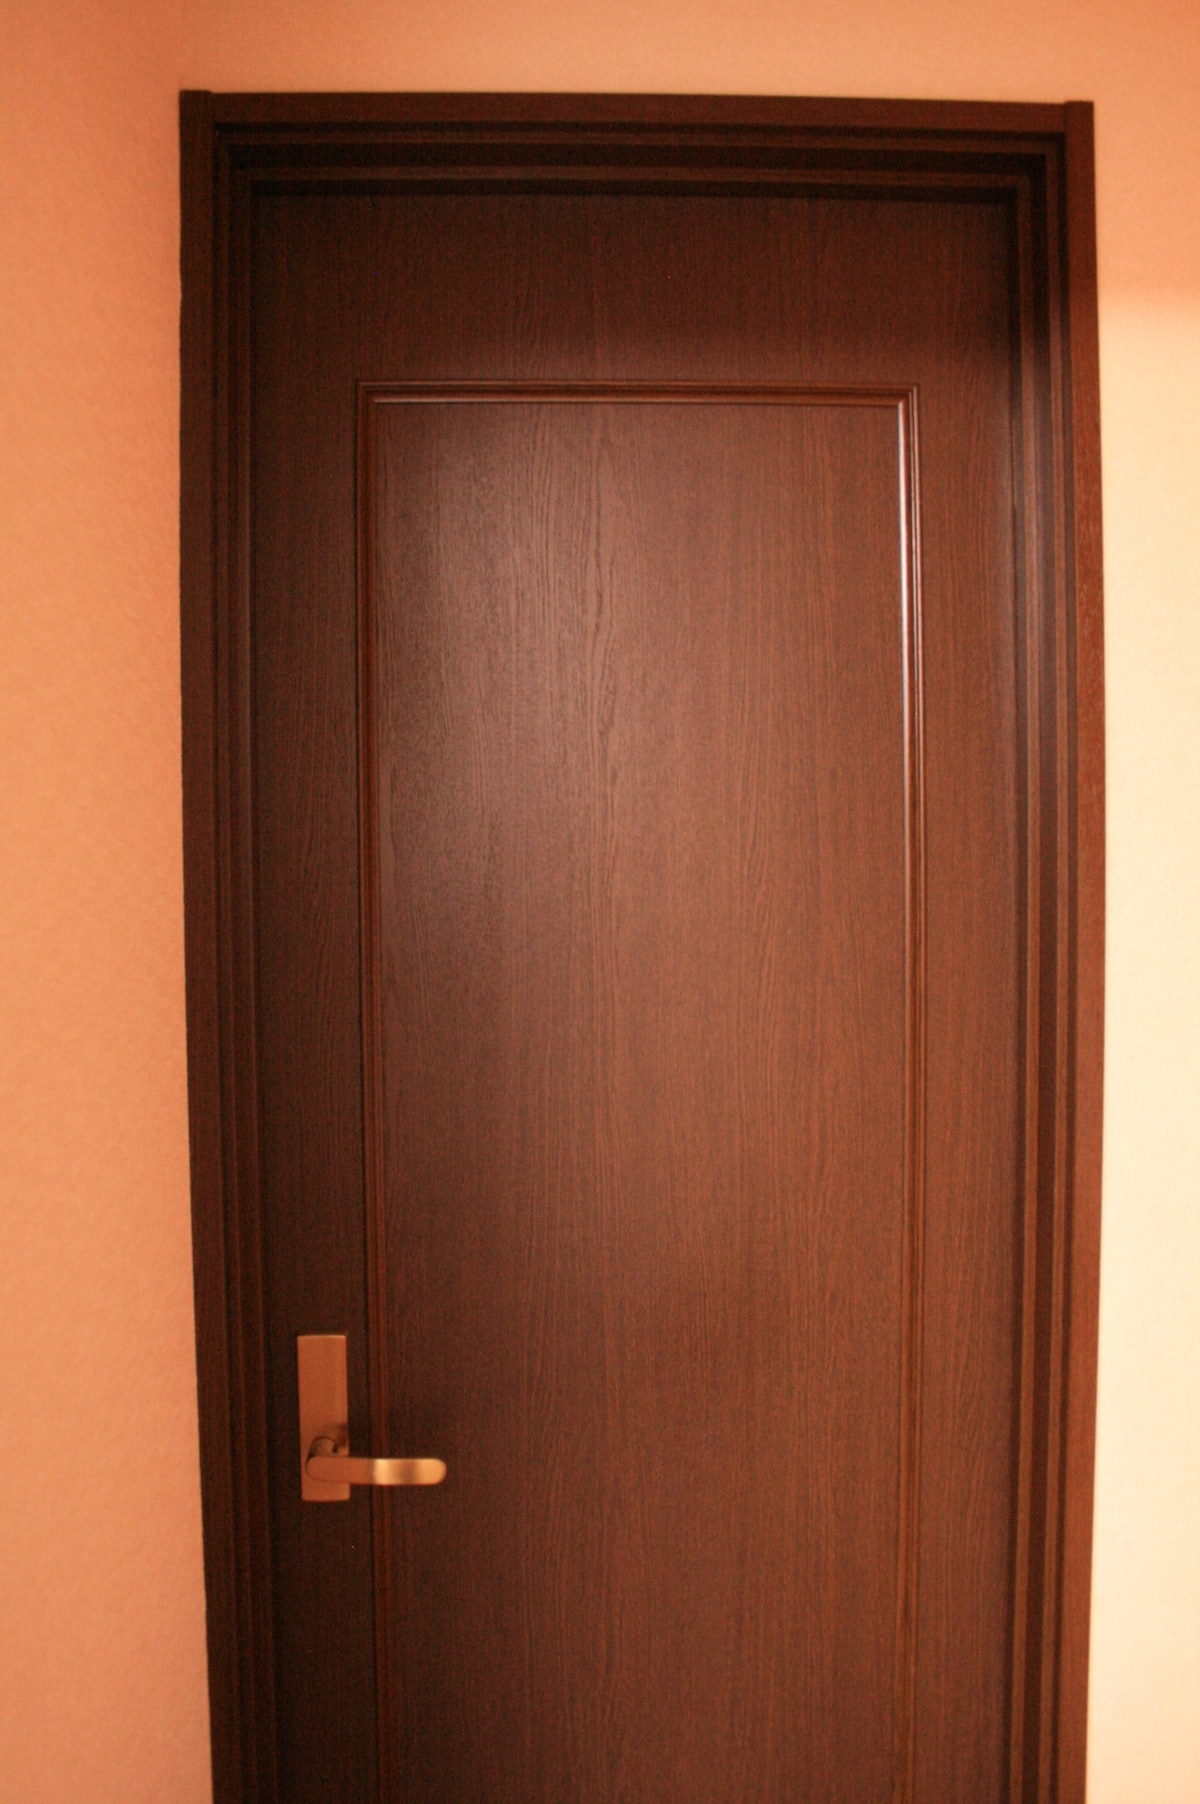 Your room's door from outside